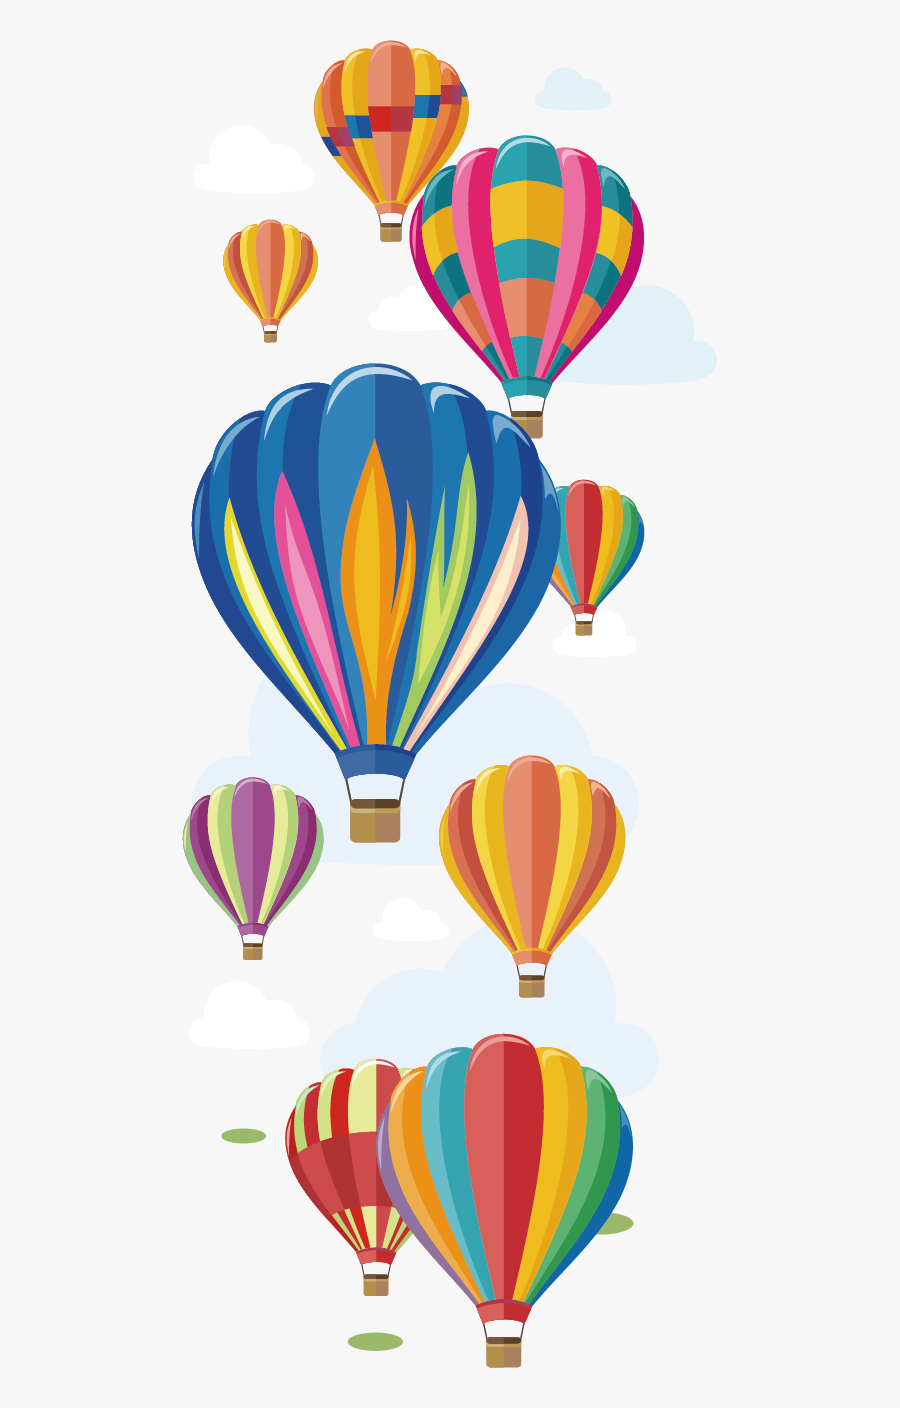 Festival Poster Clip Art - Transparent Background Hot Air Balloon Png, Transparent Clipart